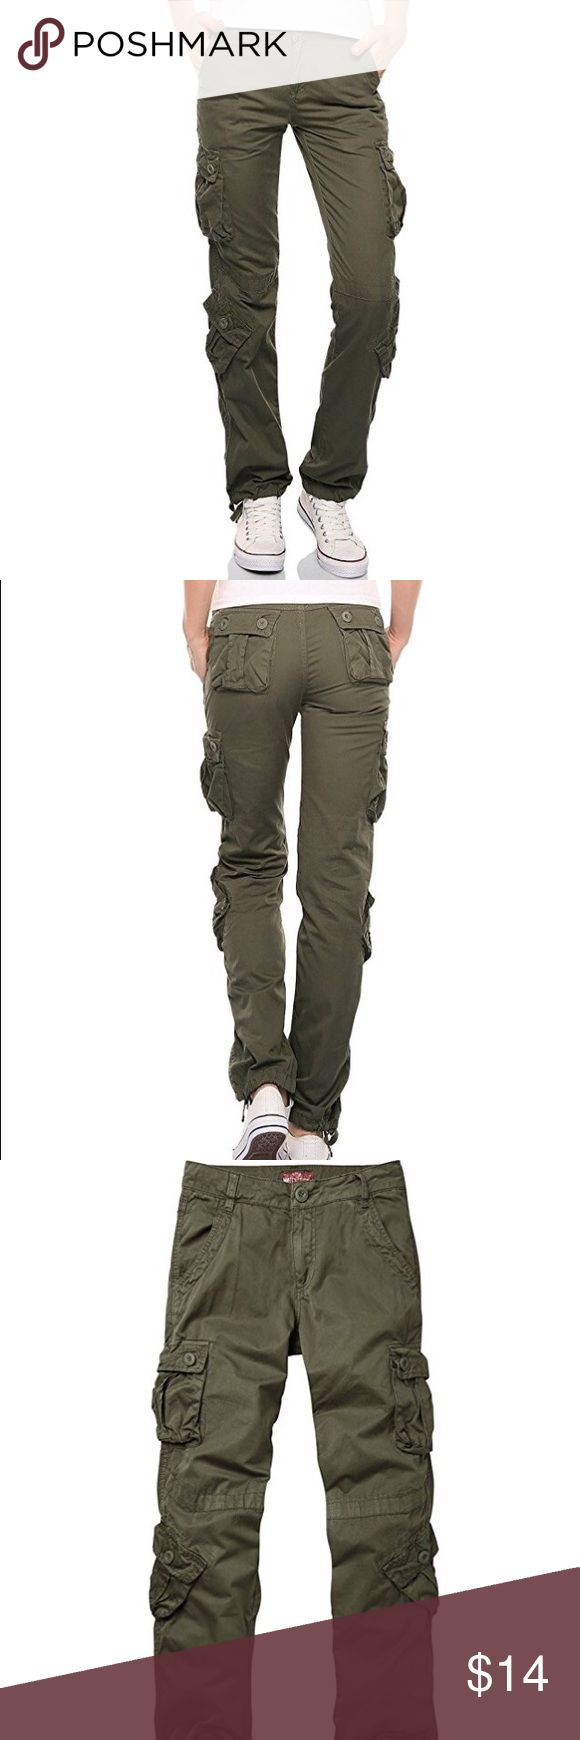 NWT women's olive straight leg cargo pants NWT olive women's cargo straight leg pants. Perfect for all seasons. Drawstring on ankles. Size medium but it fits more like a small. Pants